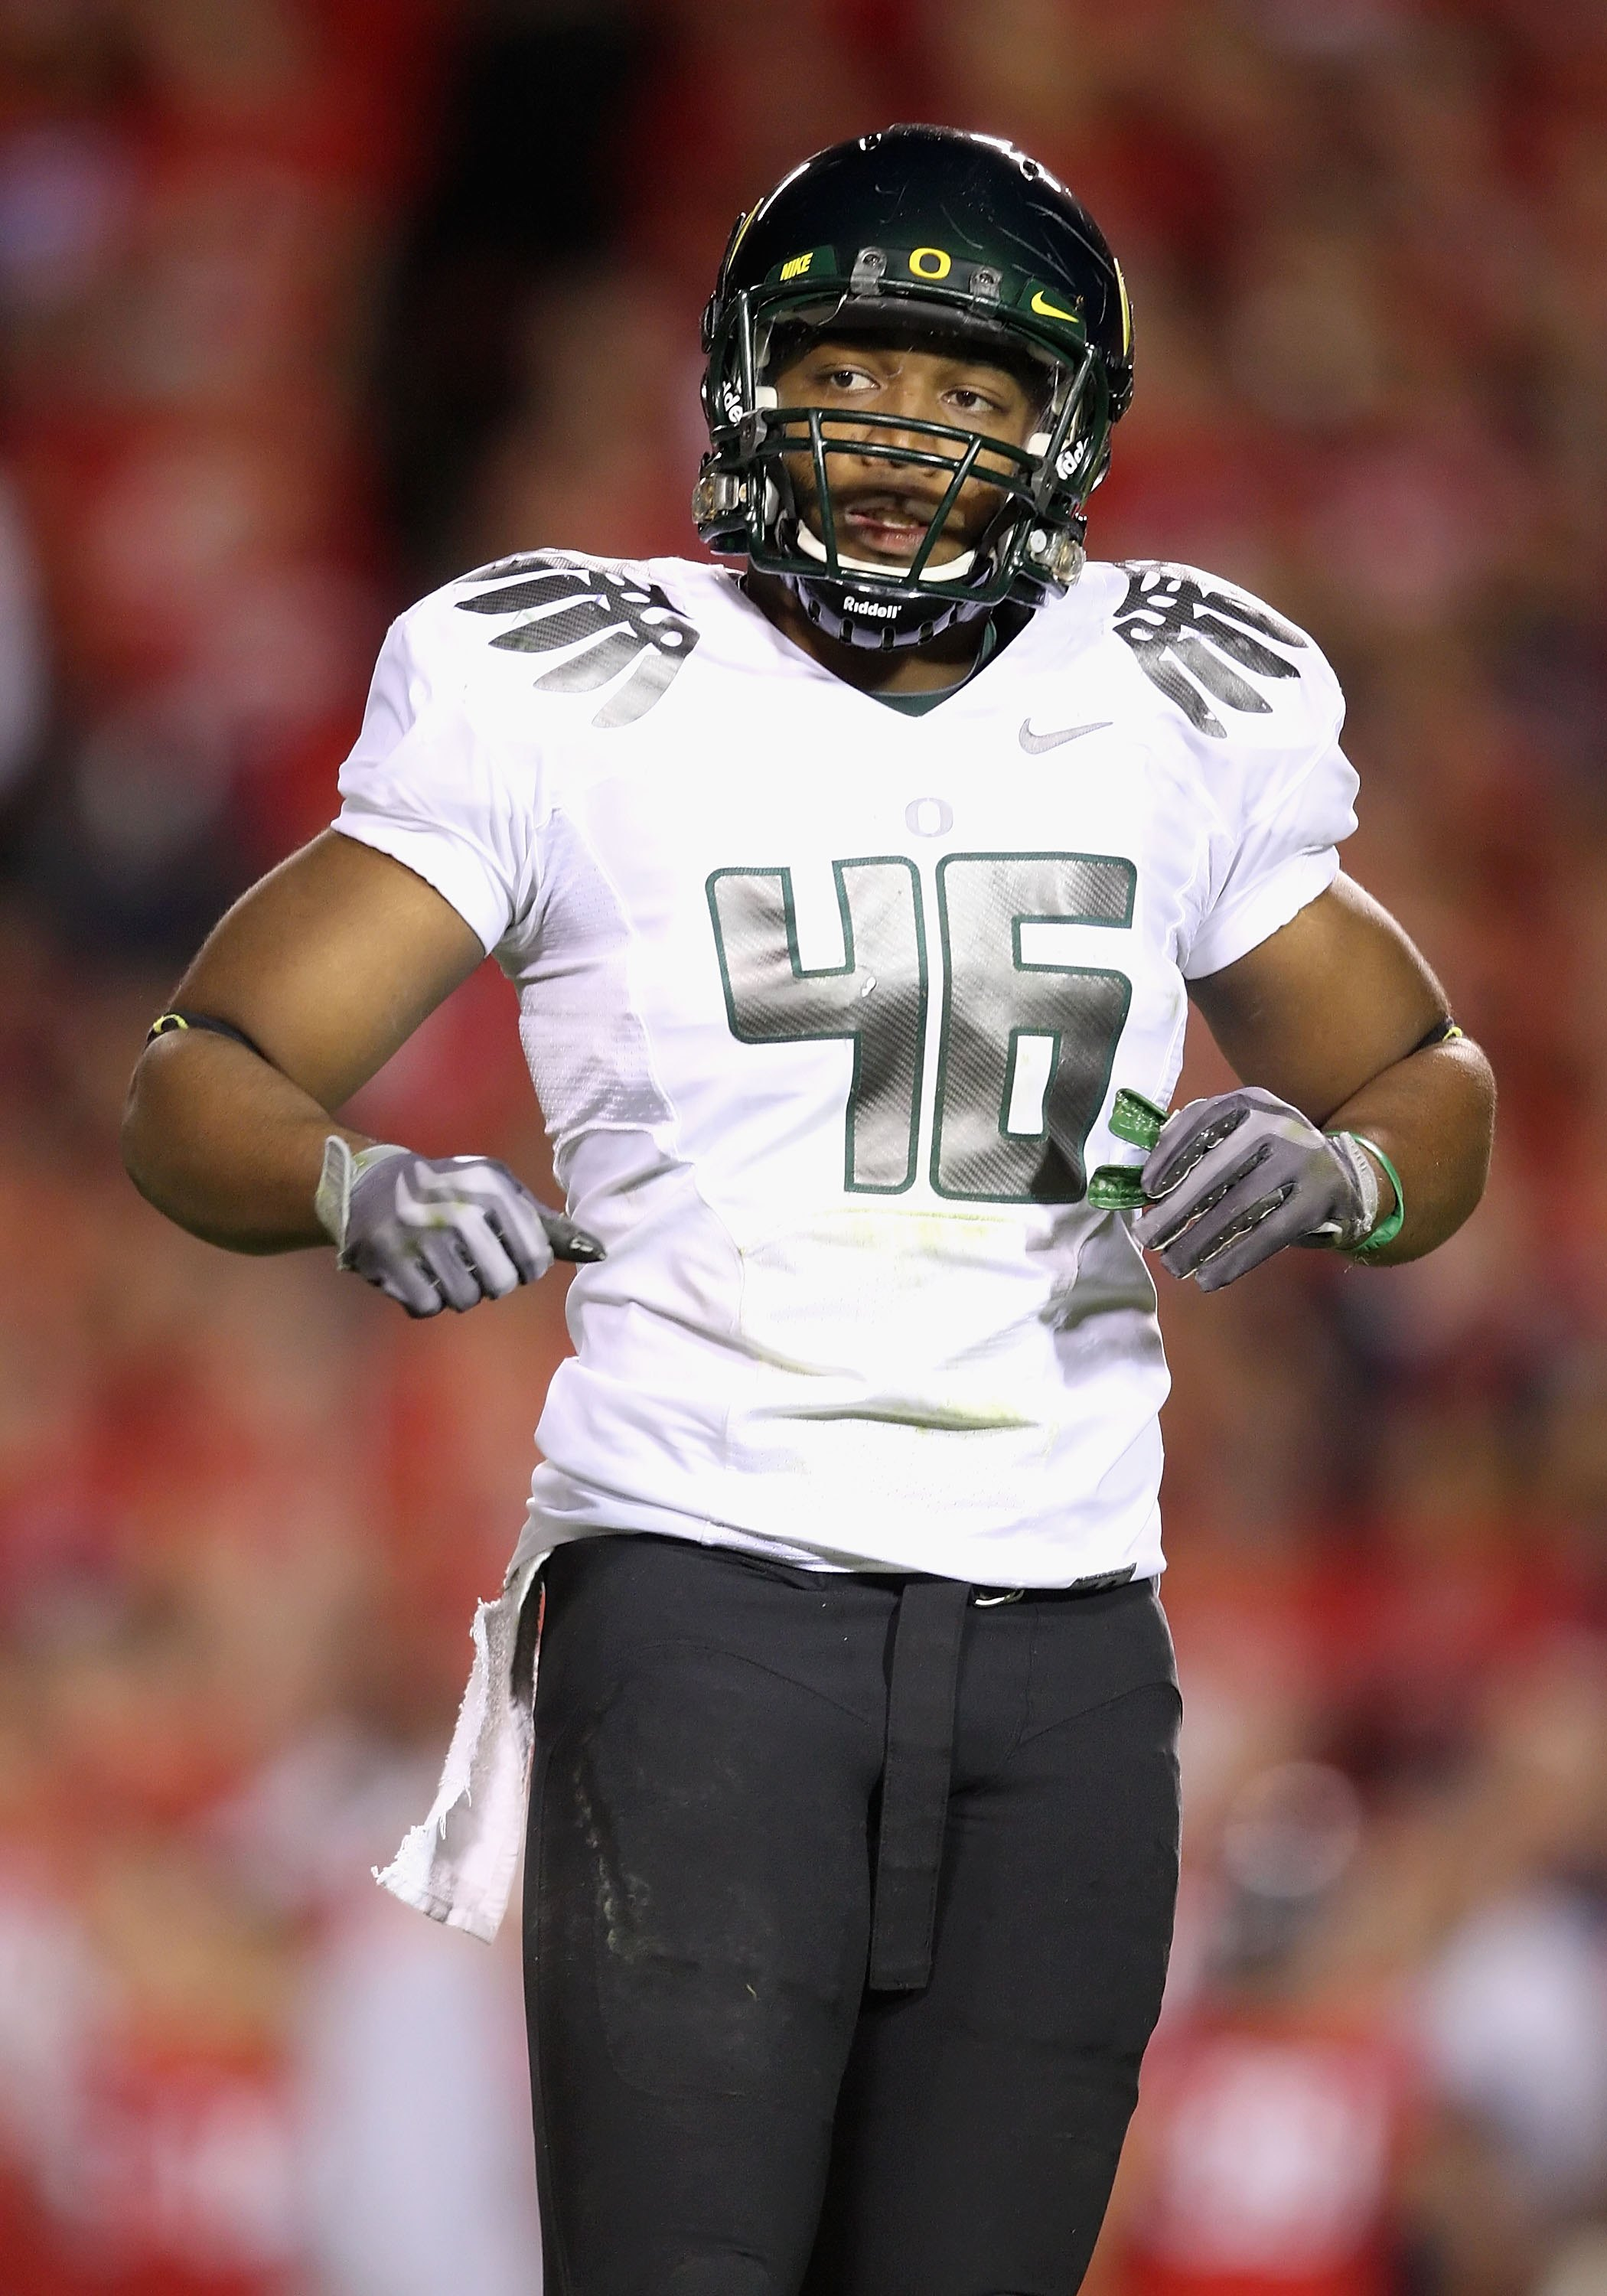 TUCSON, AZ - NOVEMBER 21:  Linebacker Michael Clay #46 of the Oregon Ducks during the college football game against the Arizona Wildcats at Arizona Stadium on November 21, 2009 in Tucson, Arizona. The Ducks defeated the Wildcats 44-41 in second overtime.